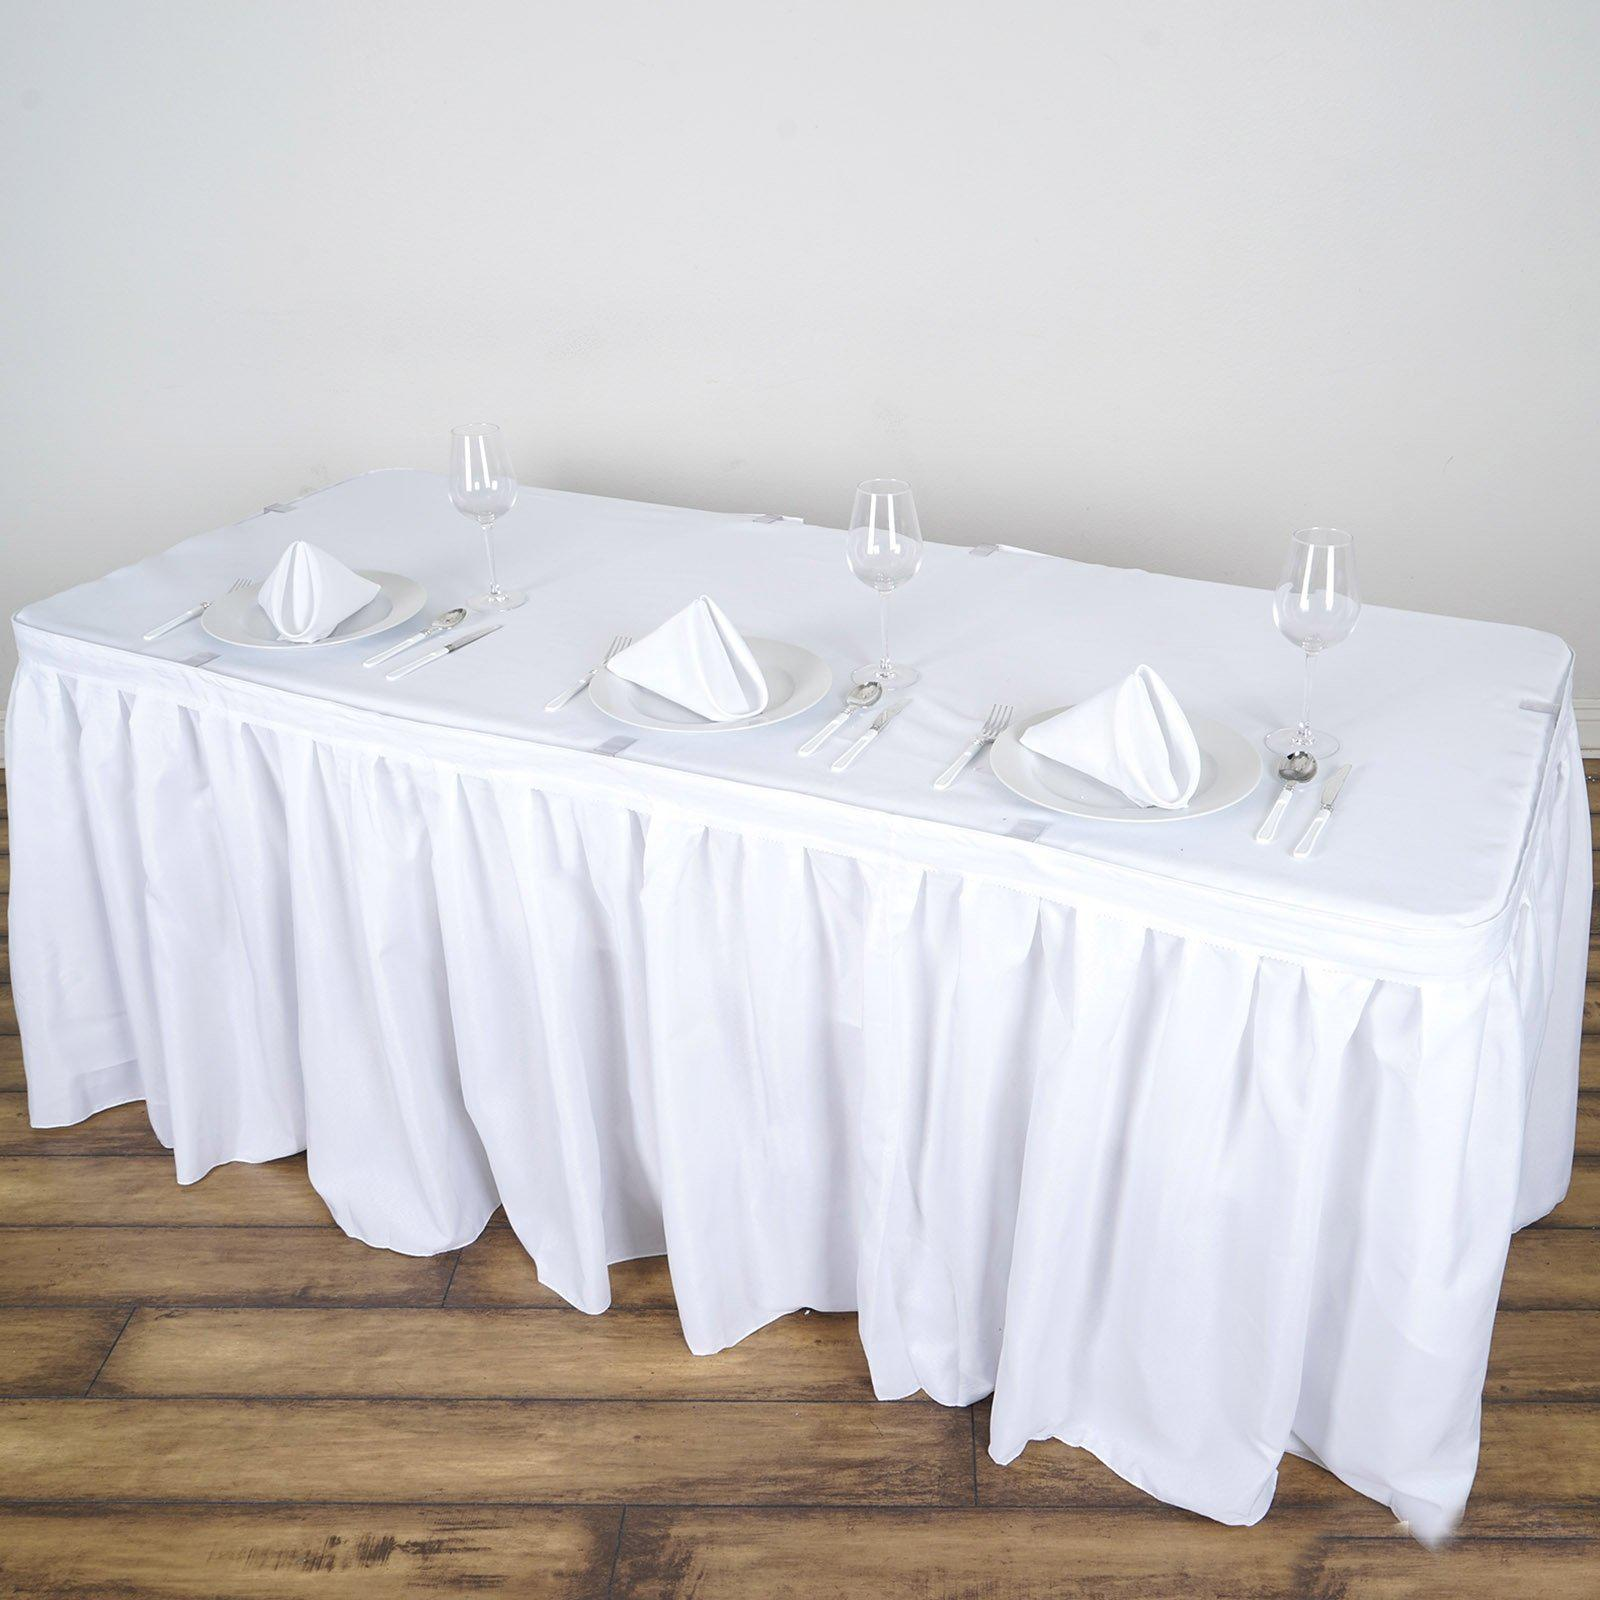 14FT Wholesale White Pleated Polyester Table Skirt For Wedding Party Event